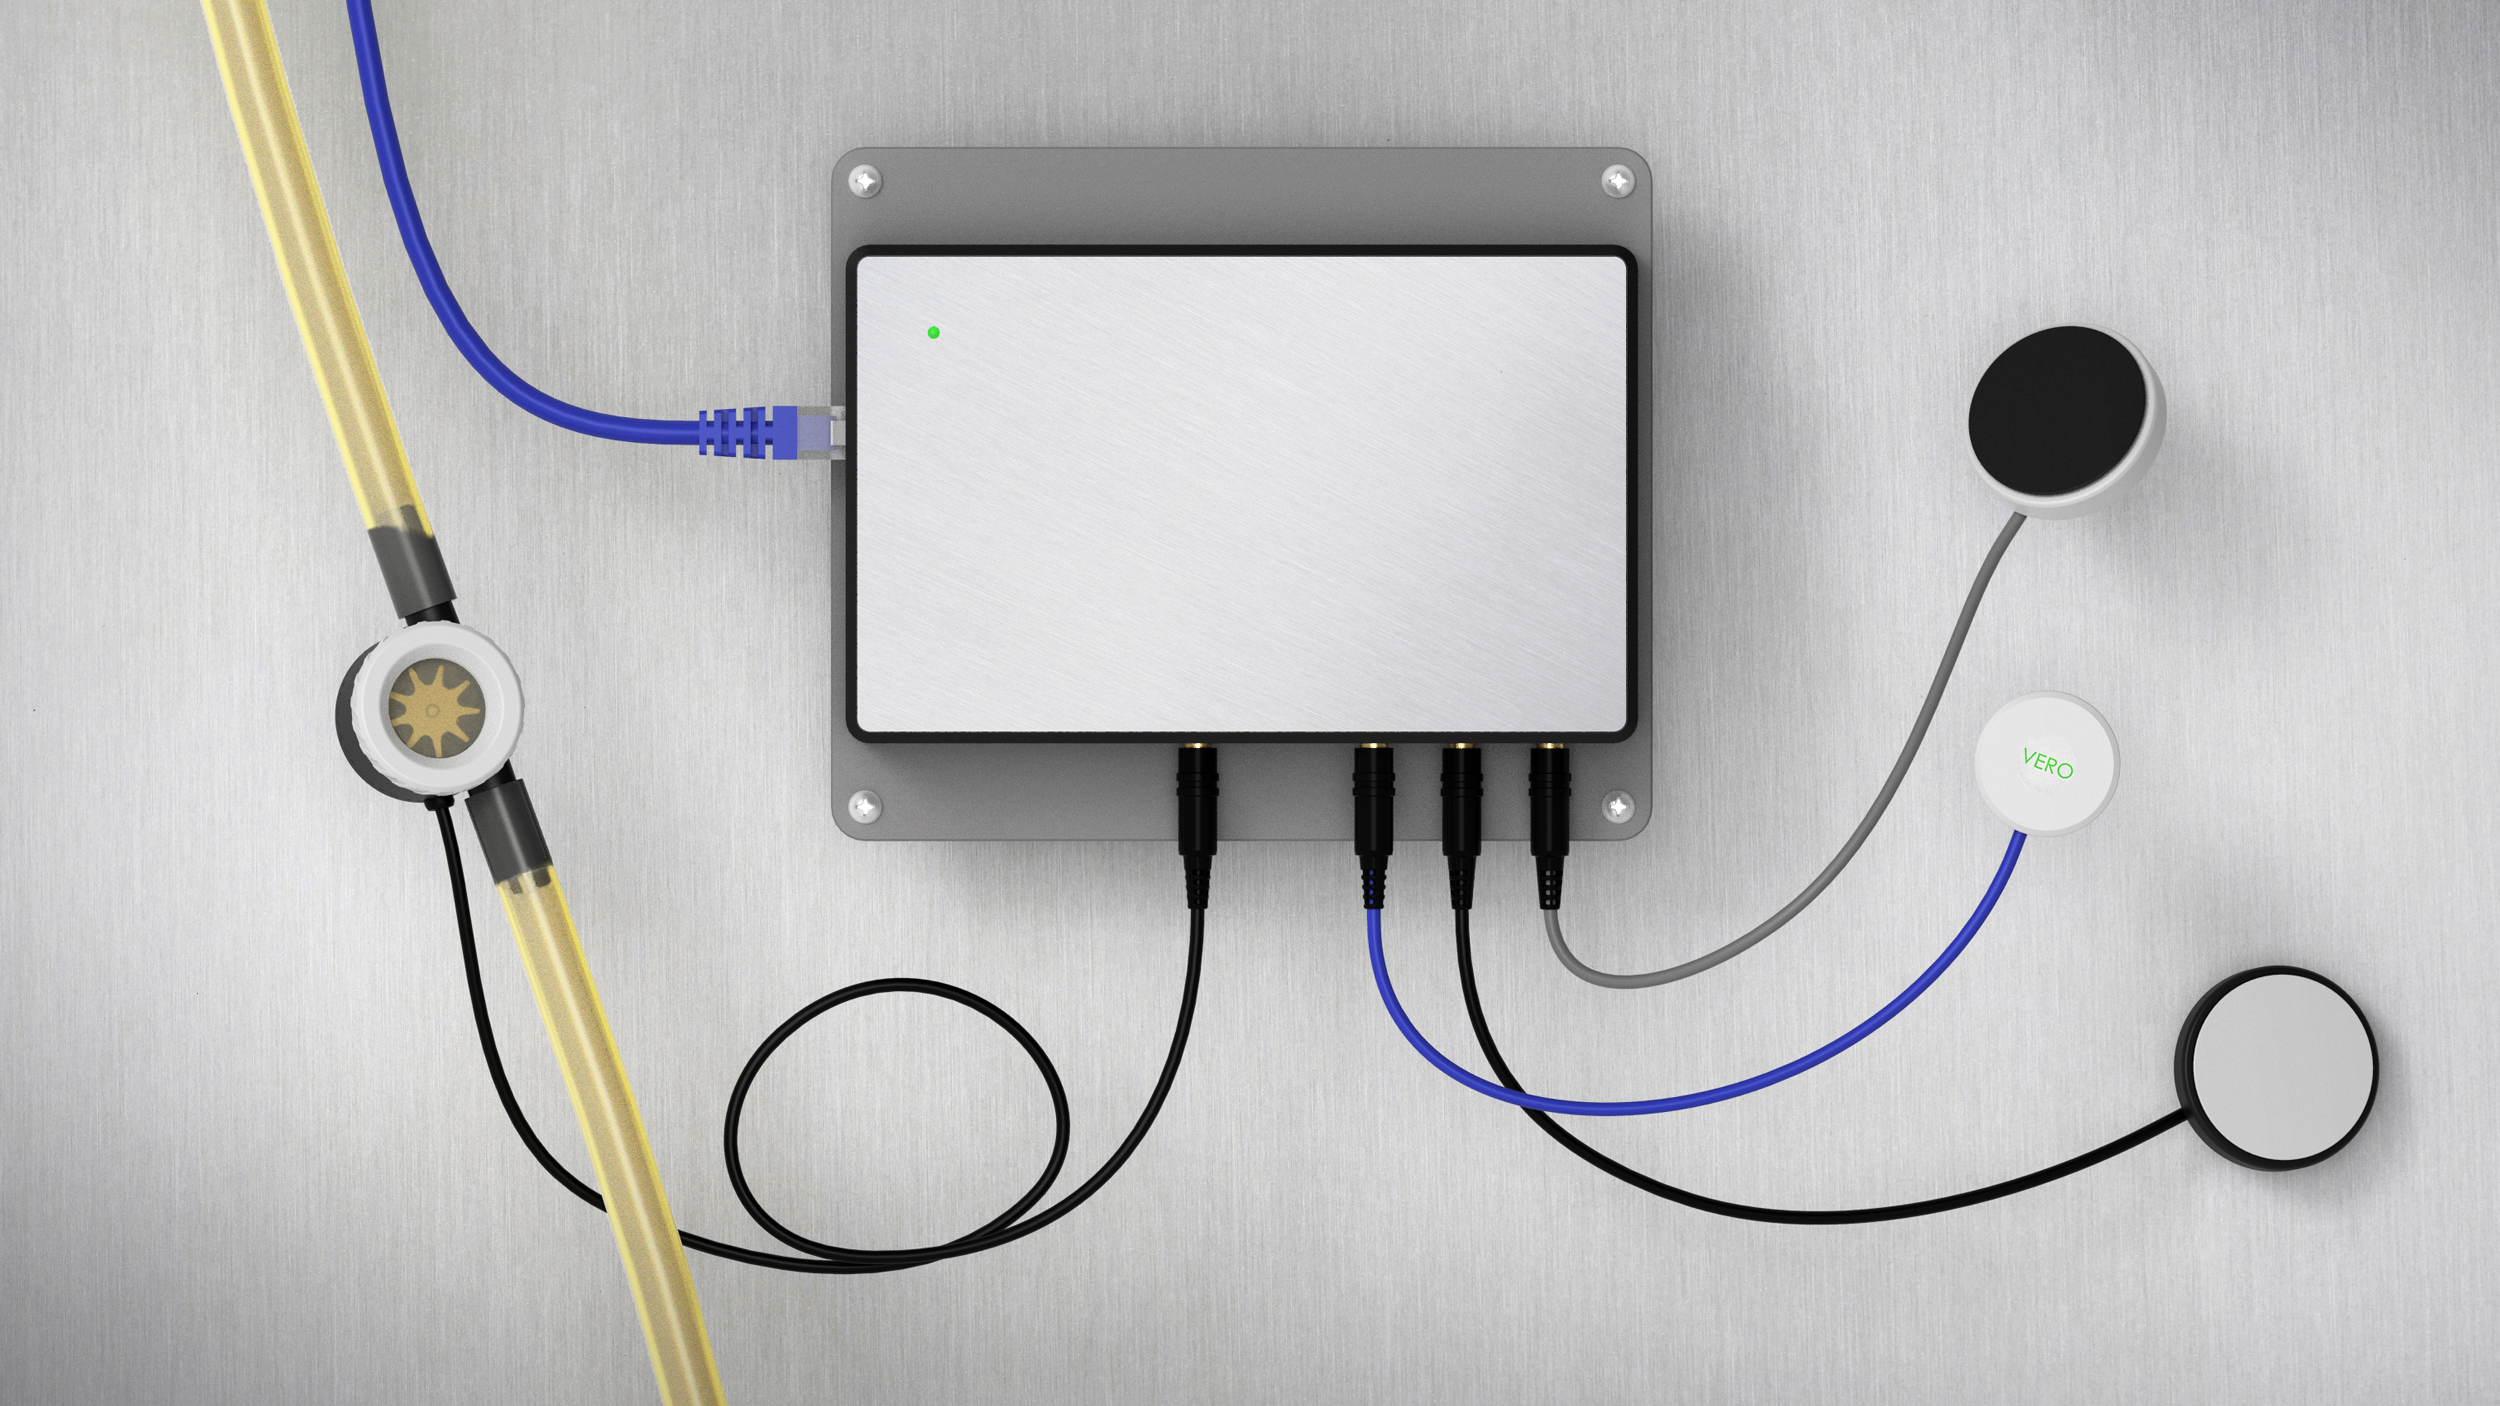 A render of the VERO Beverage Management Hardware and its various sensors, mounted on a stainless steel surface.